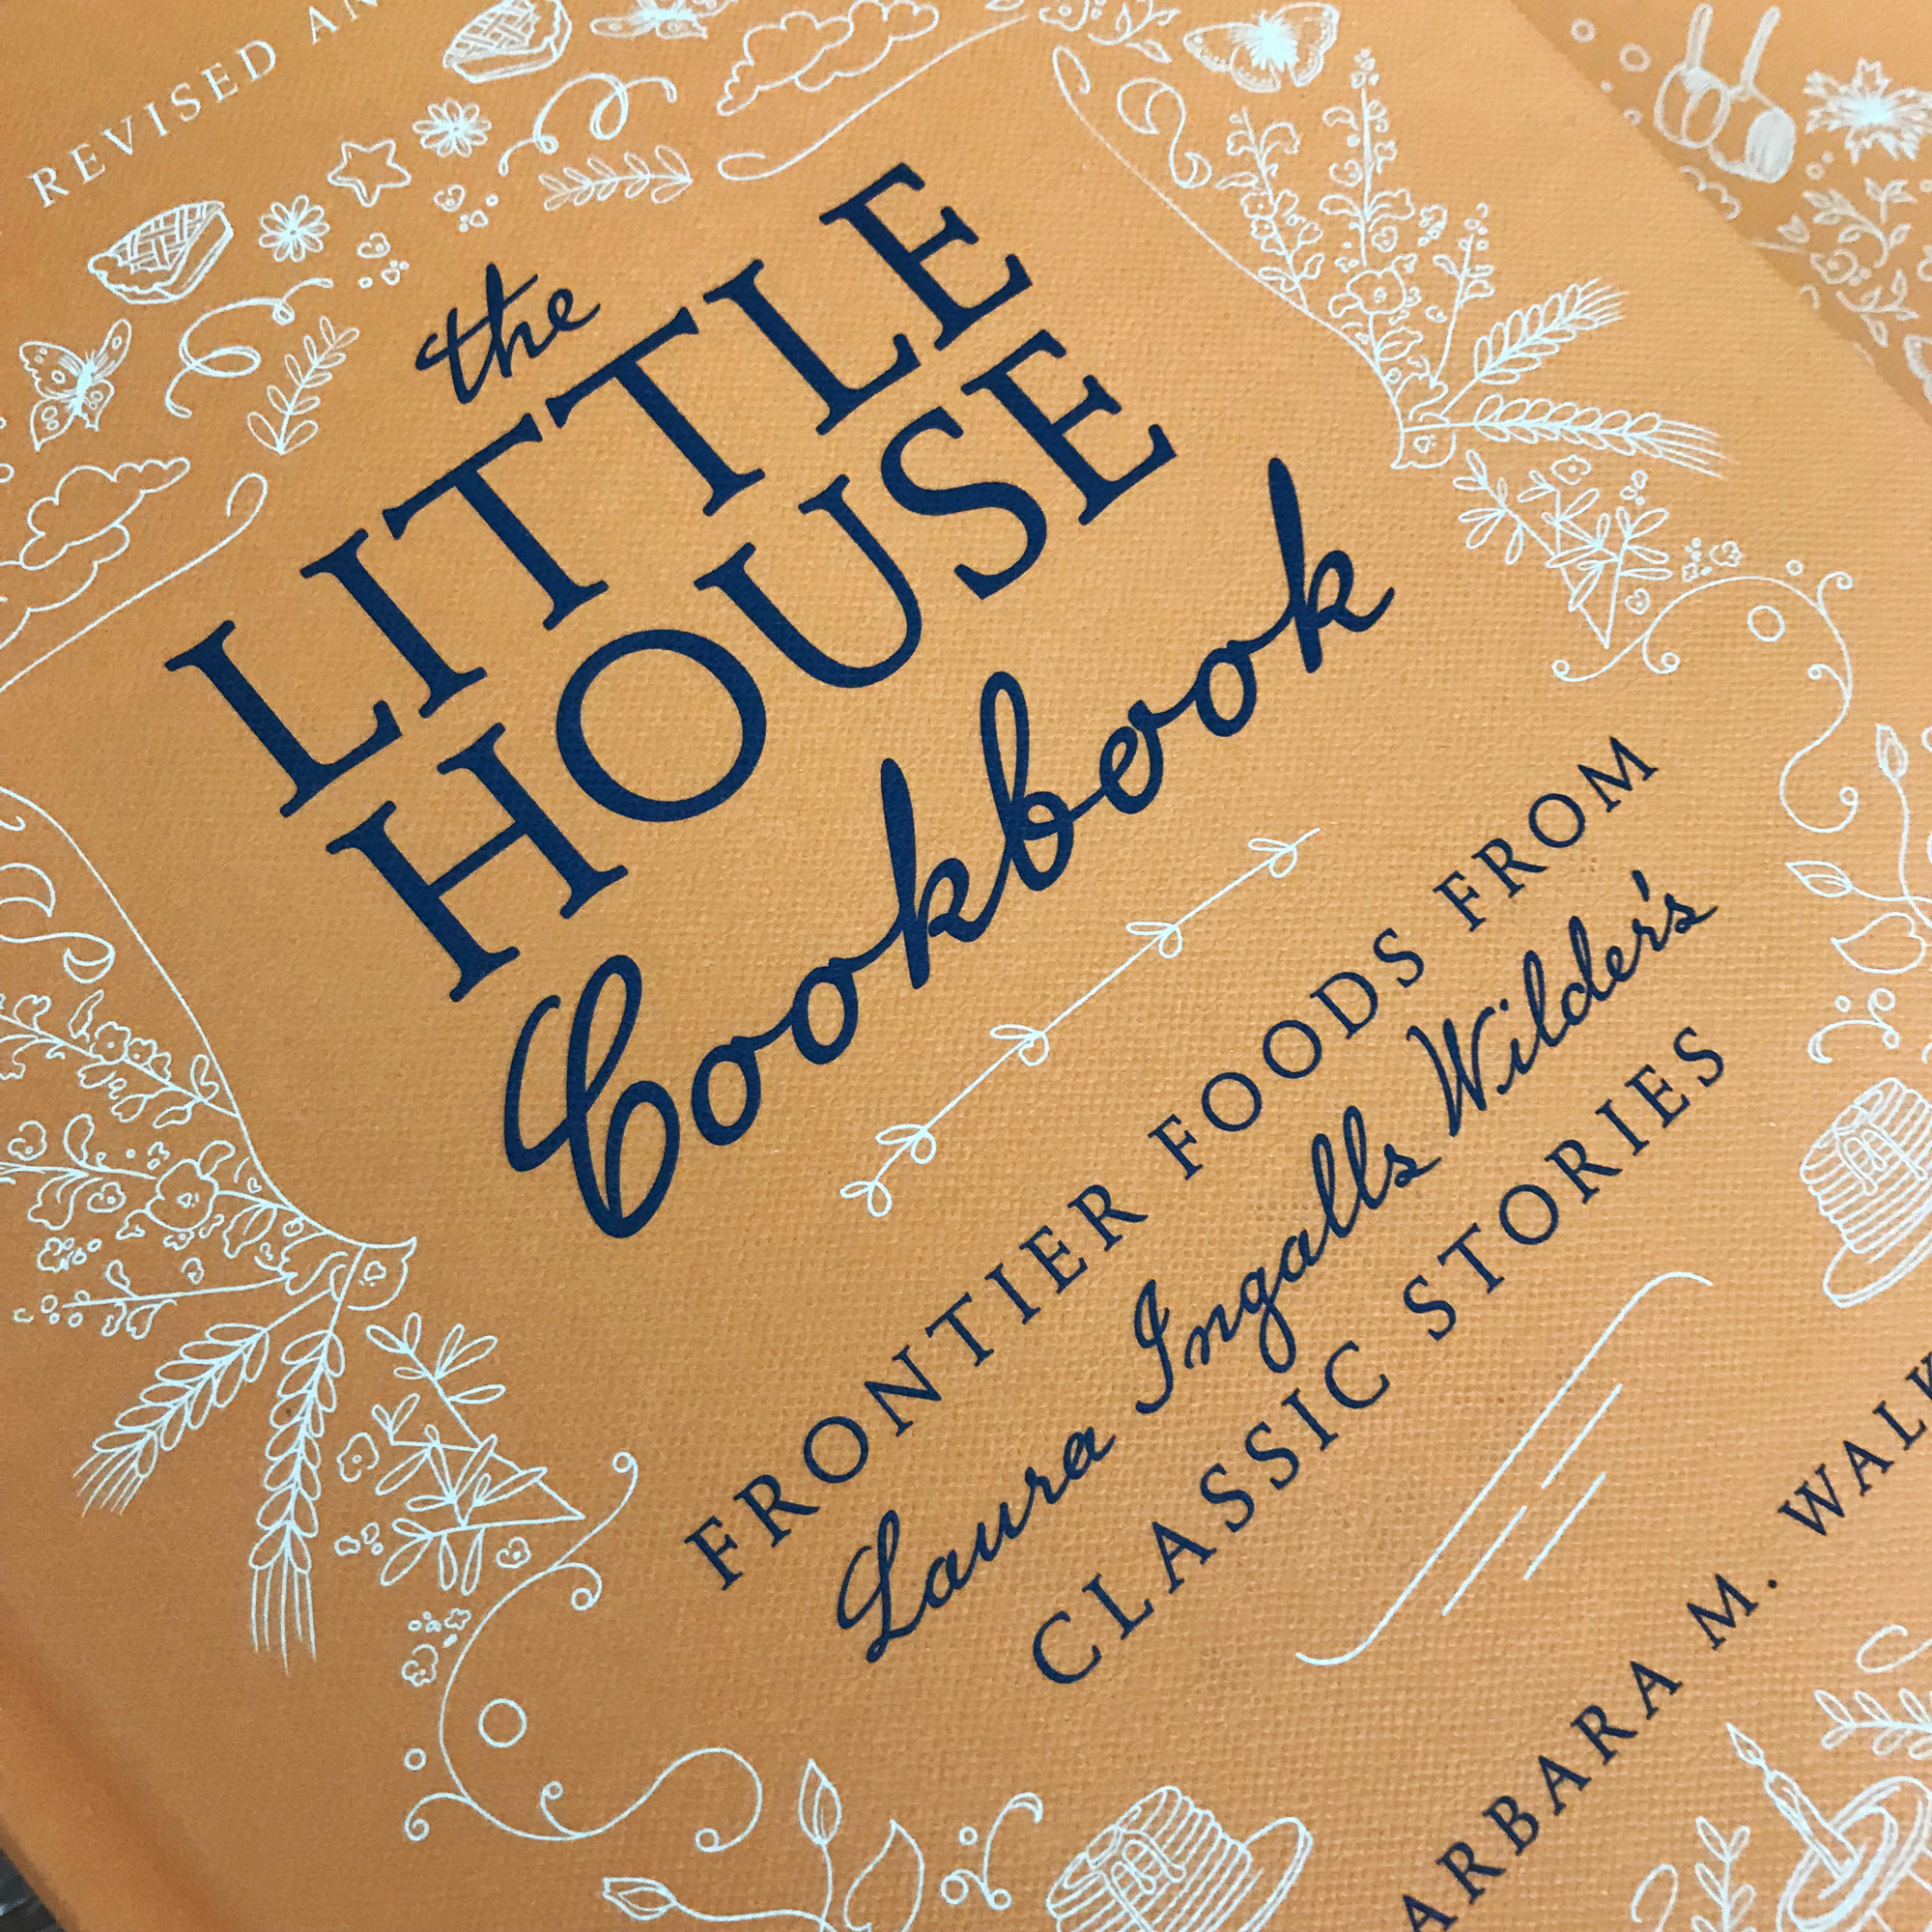 Little House script was inspired by written notes of Laura Ingalls Wilder